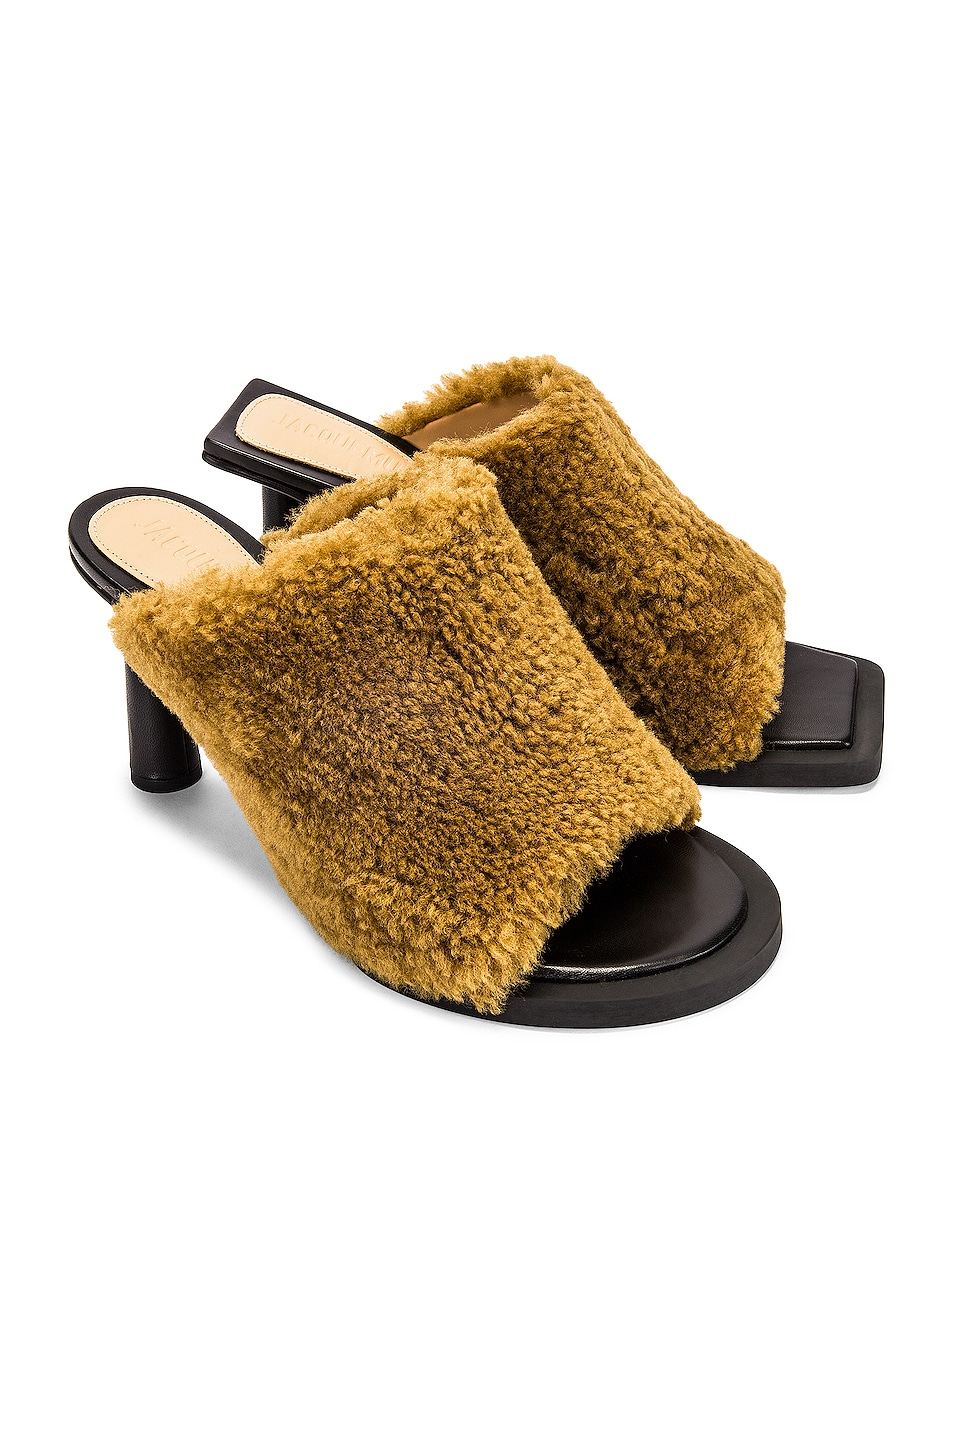 Image 1 of JACQUEMUS Les Mules Carre Rond in Khaki Shearling